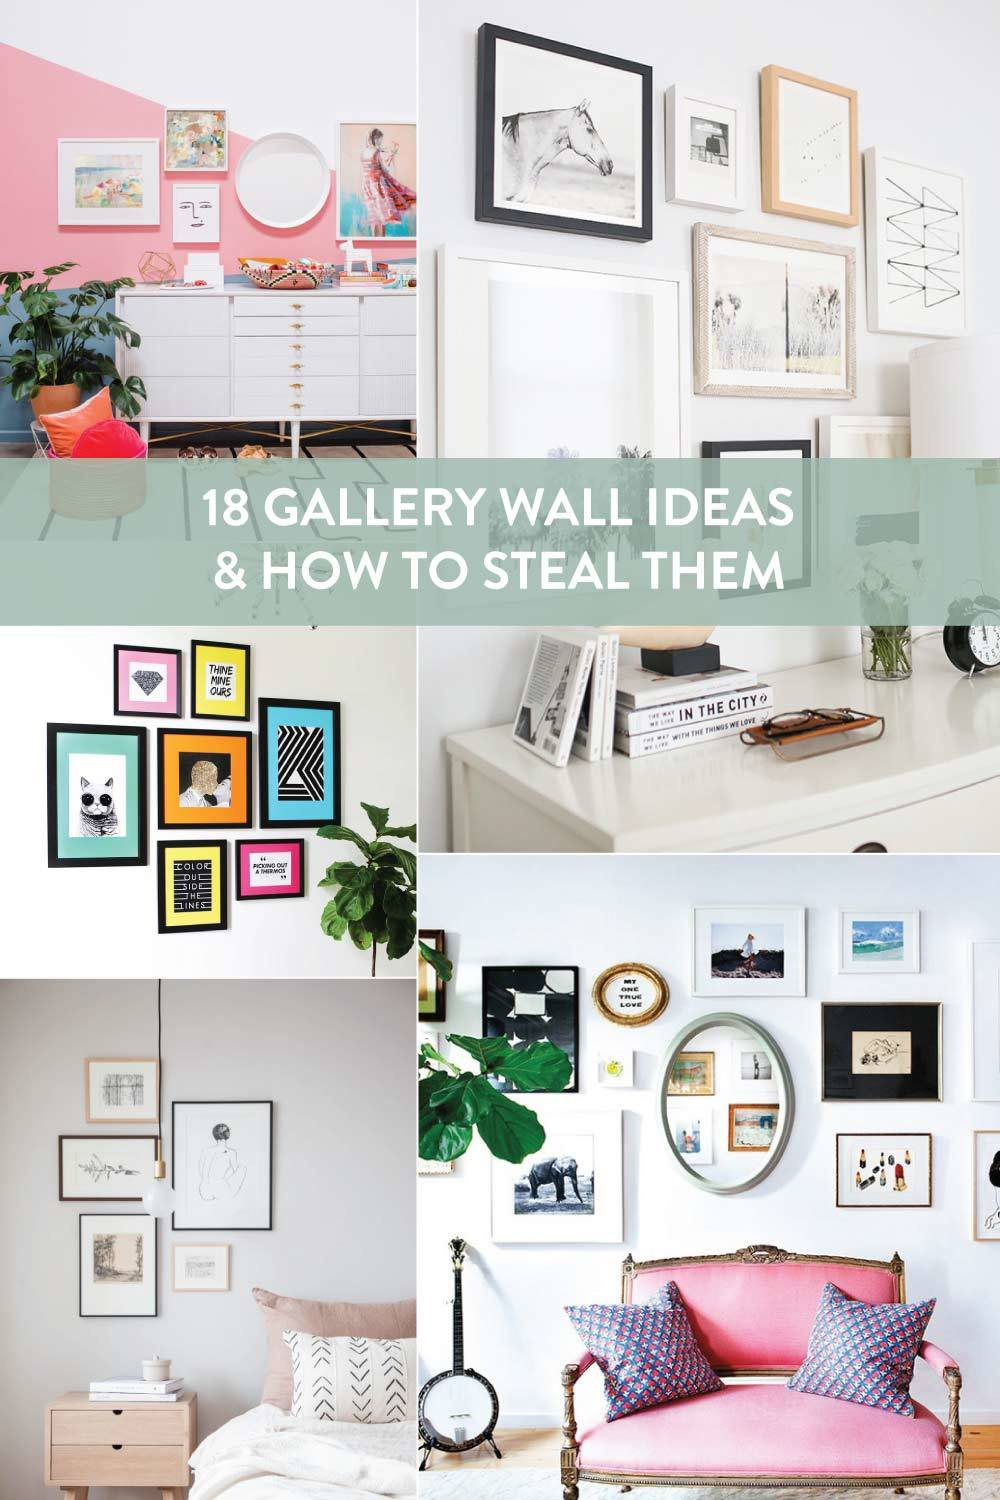 18 Gallery Wall Ideas and How to Steal Them